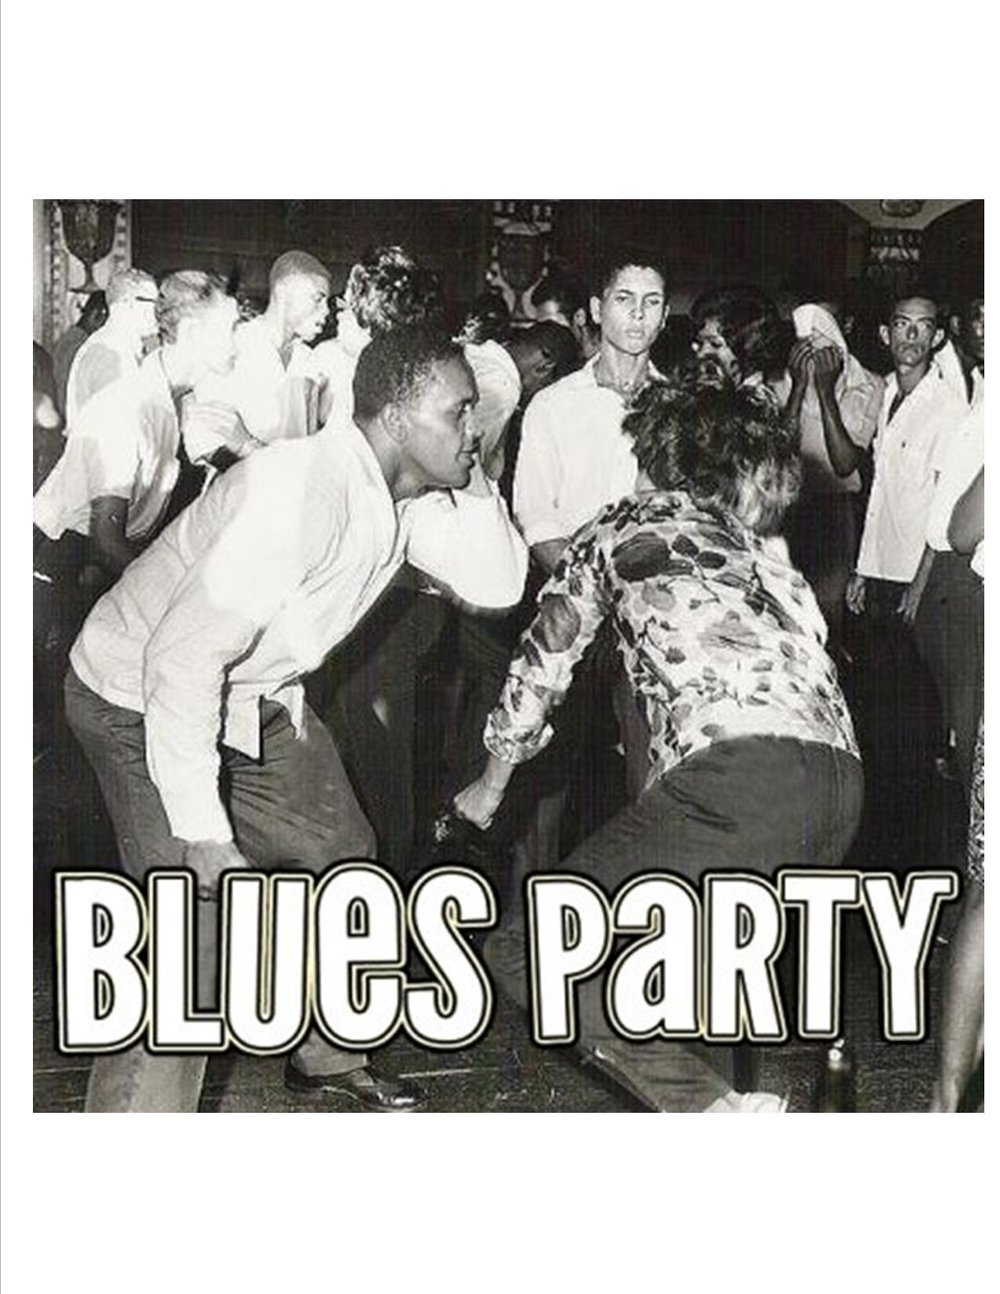 blues party.jpg